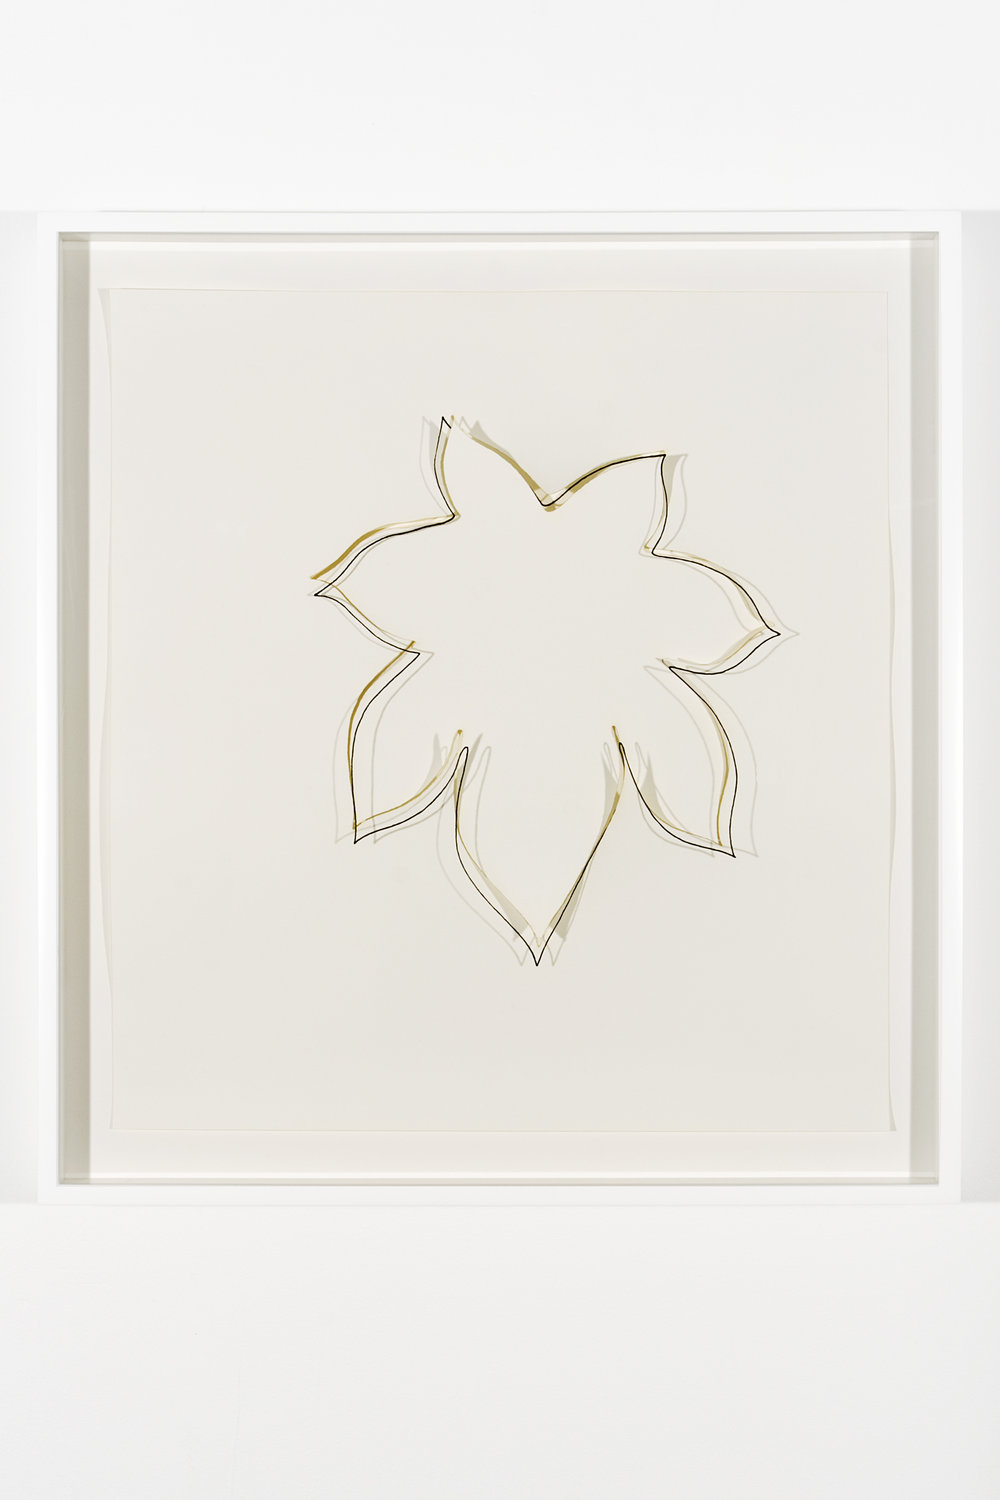 """Collapsed Drawing: """"Castor Bean Leaf"""" (Ellsworth Kelly), 2007 laser-cut paper and laser-cut archival digital print mounted on museum board 70,8 x 66 cm - 27 7/8 x 26 inches"""